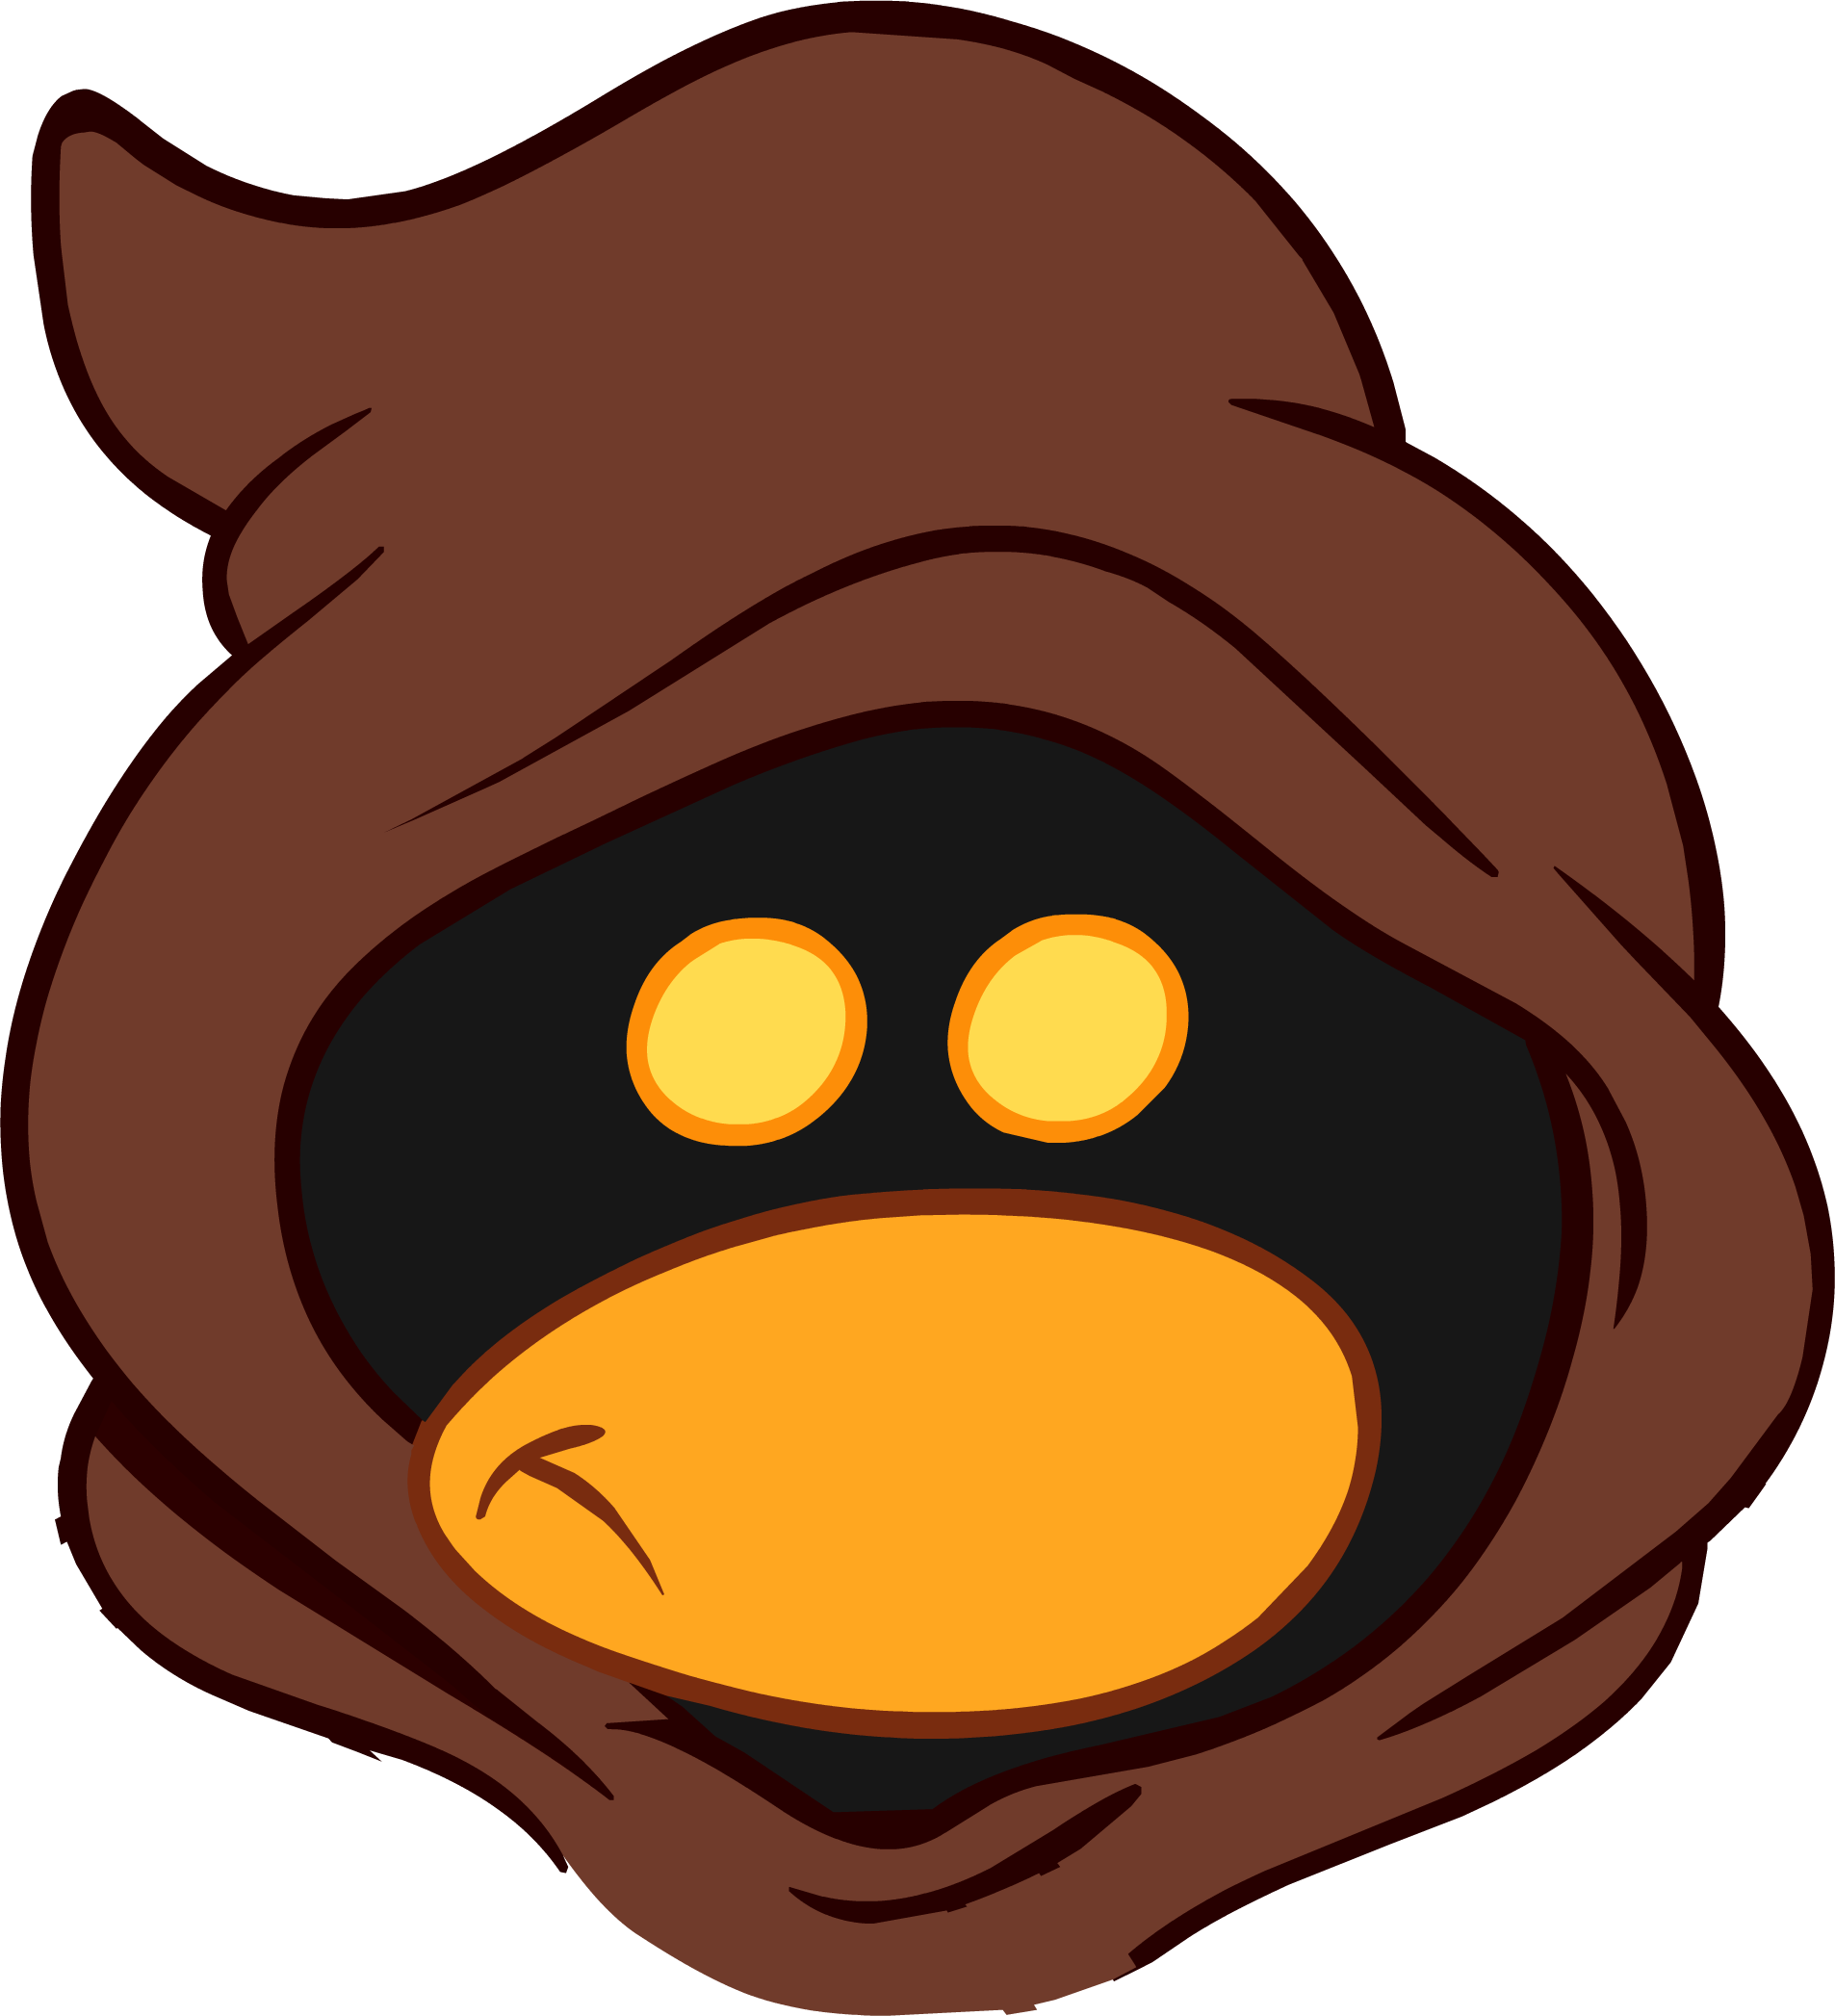 Star wars jawa clipart picture Jawa Mask | Club Penguin Wiki | FANDOM powered by Wikia picture